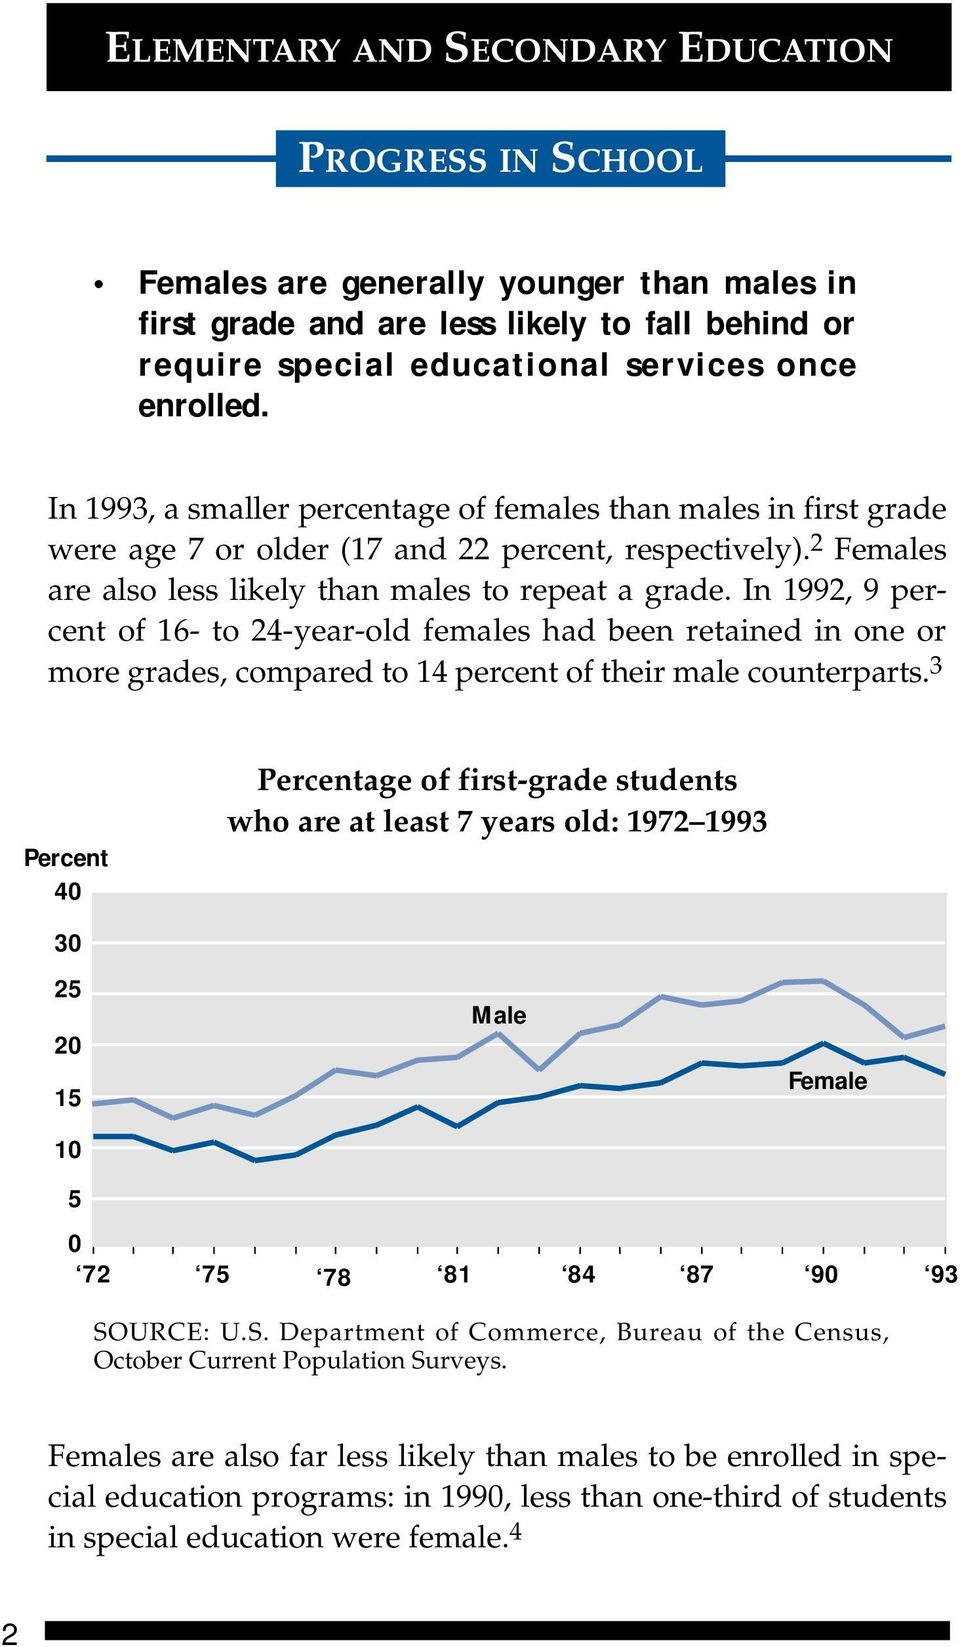 In 1992, 9 percent of 16- to 24-year-old females had been retained in one or more grades, compared to 14 percent of their male counterparts.